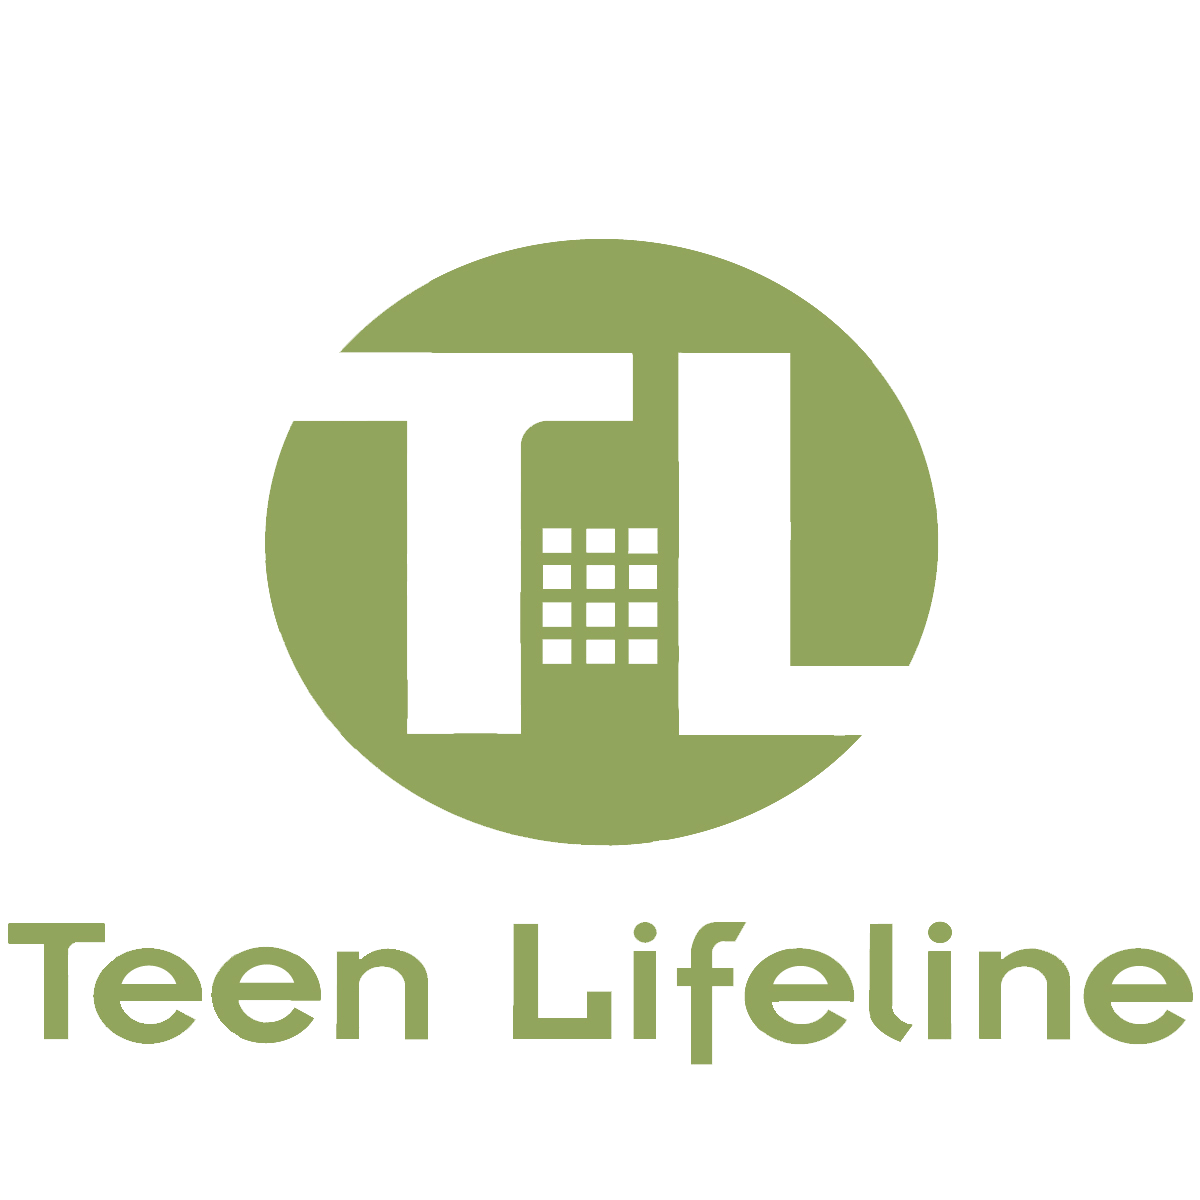 Teen Lifeline Logo